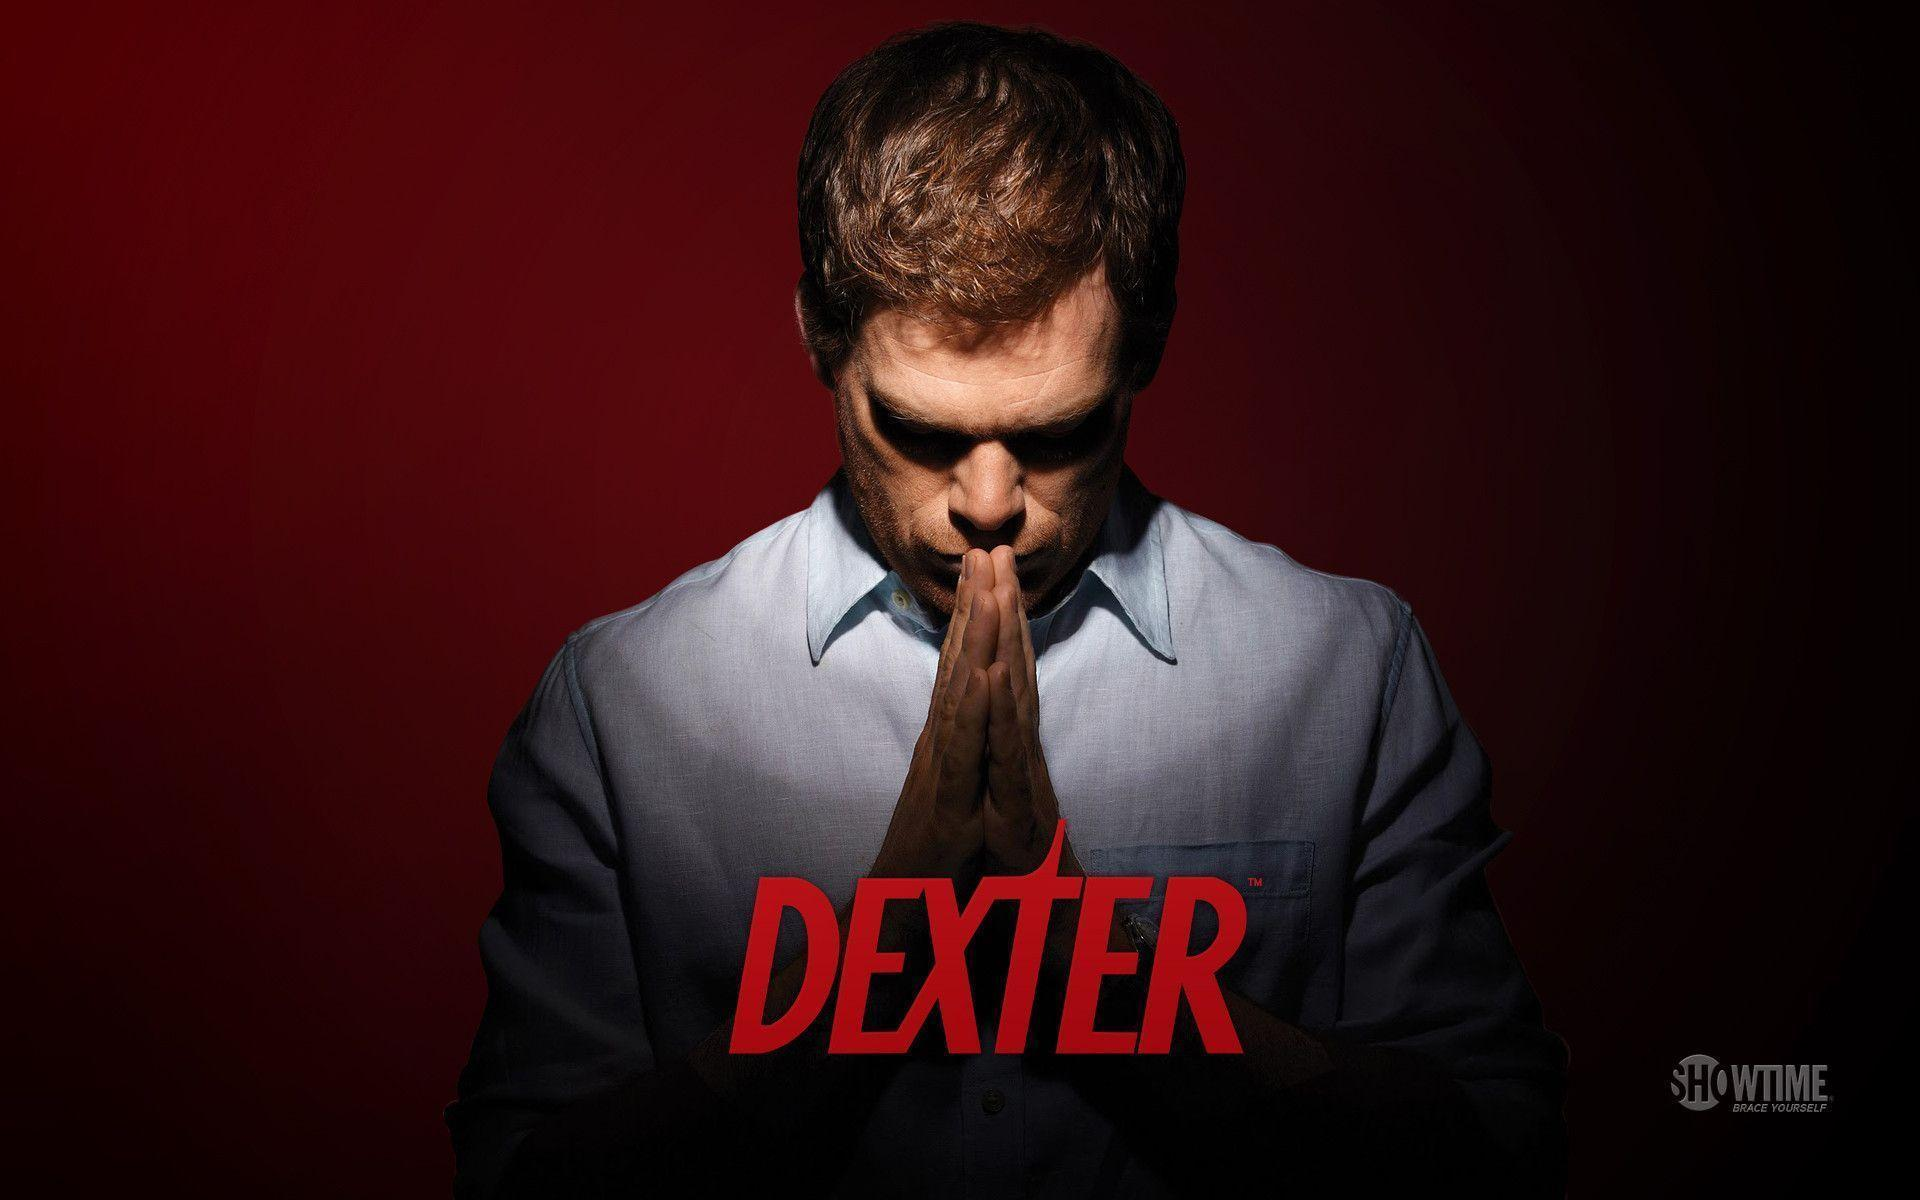 dexter iphone wallpaper - photo #38